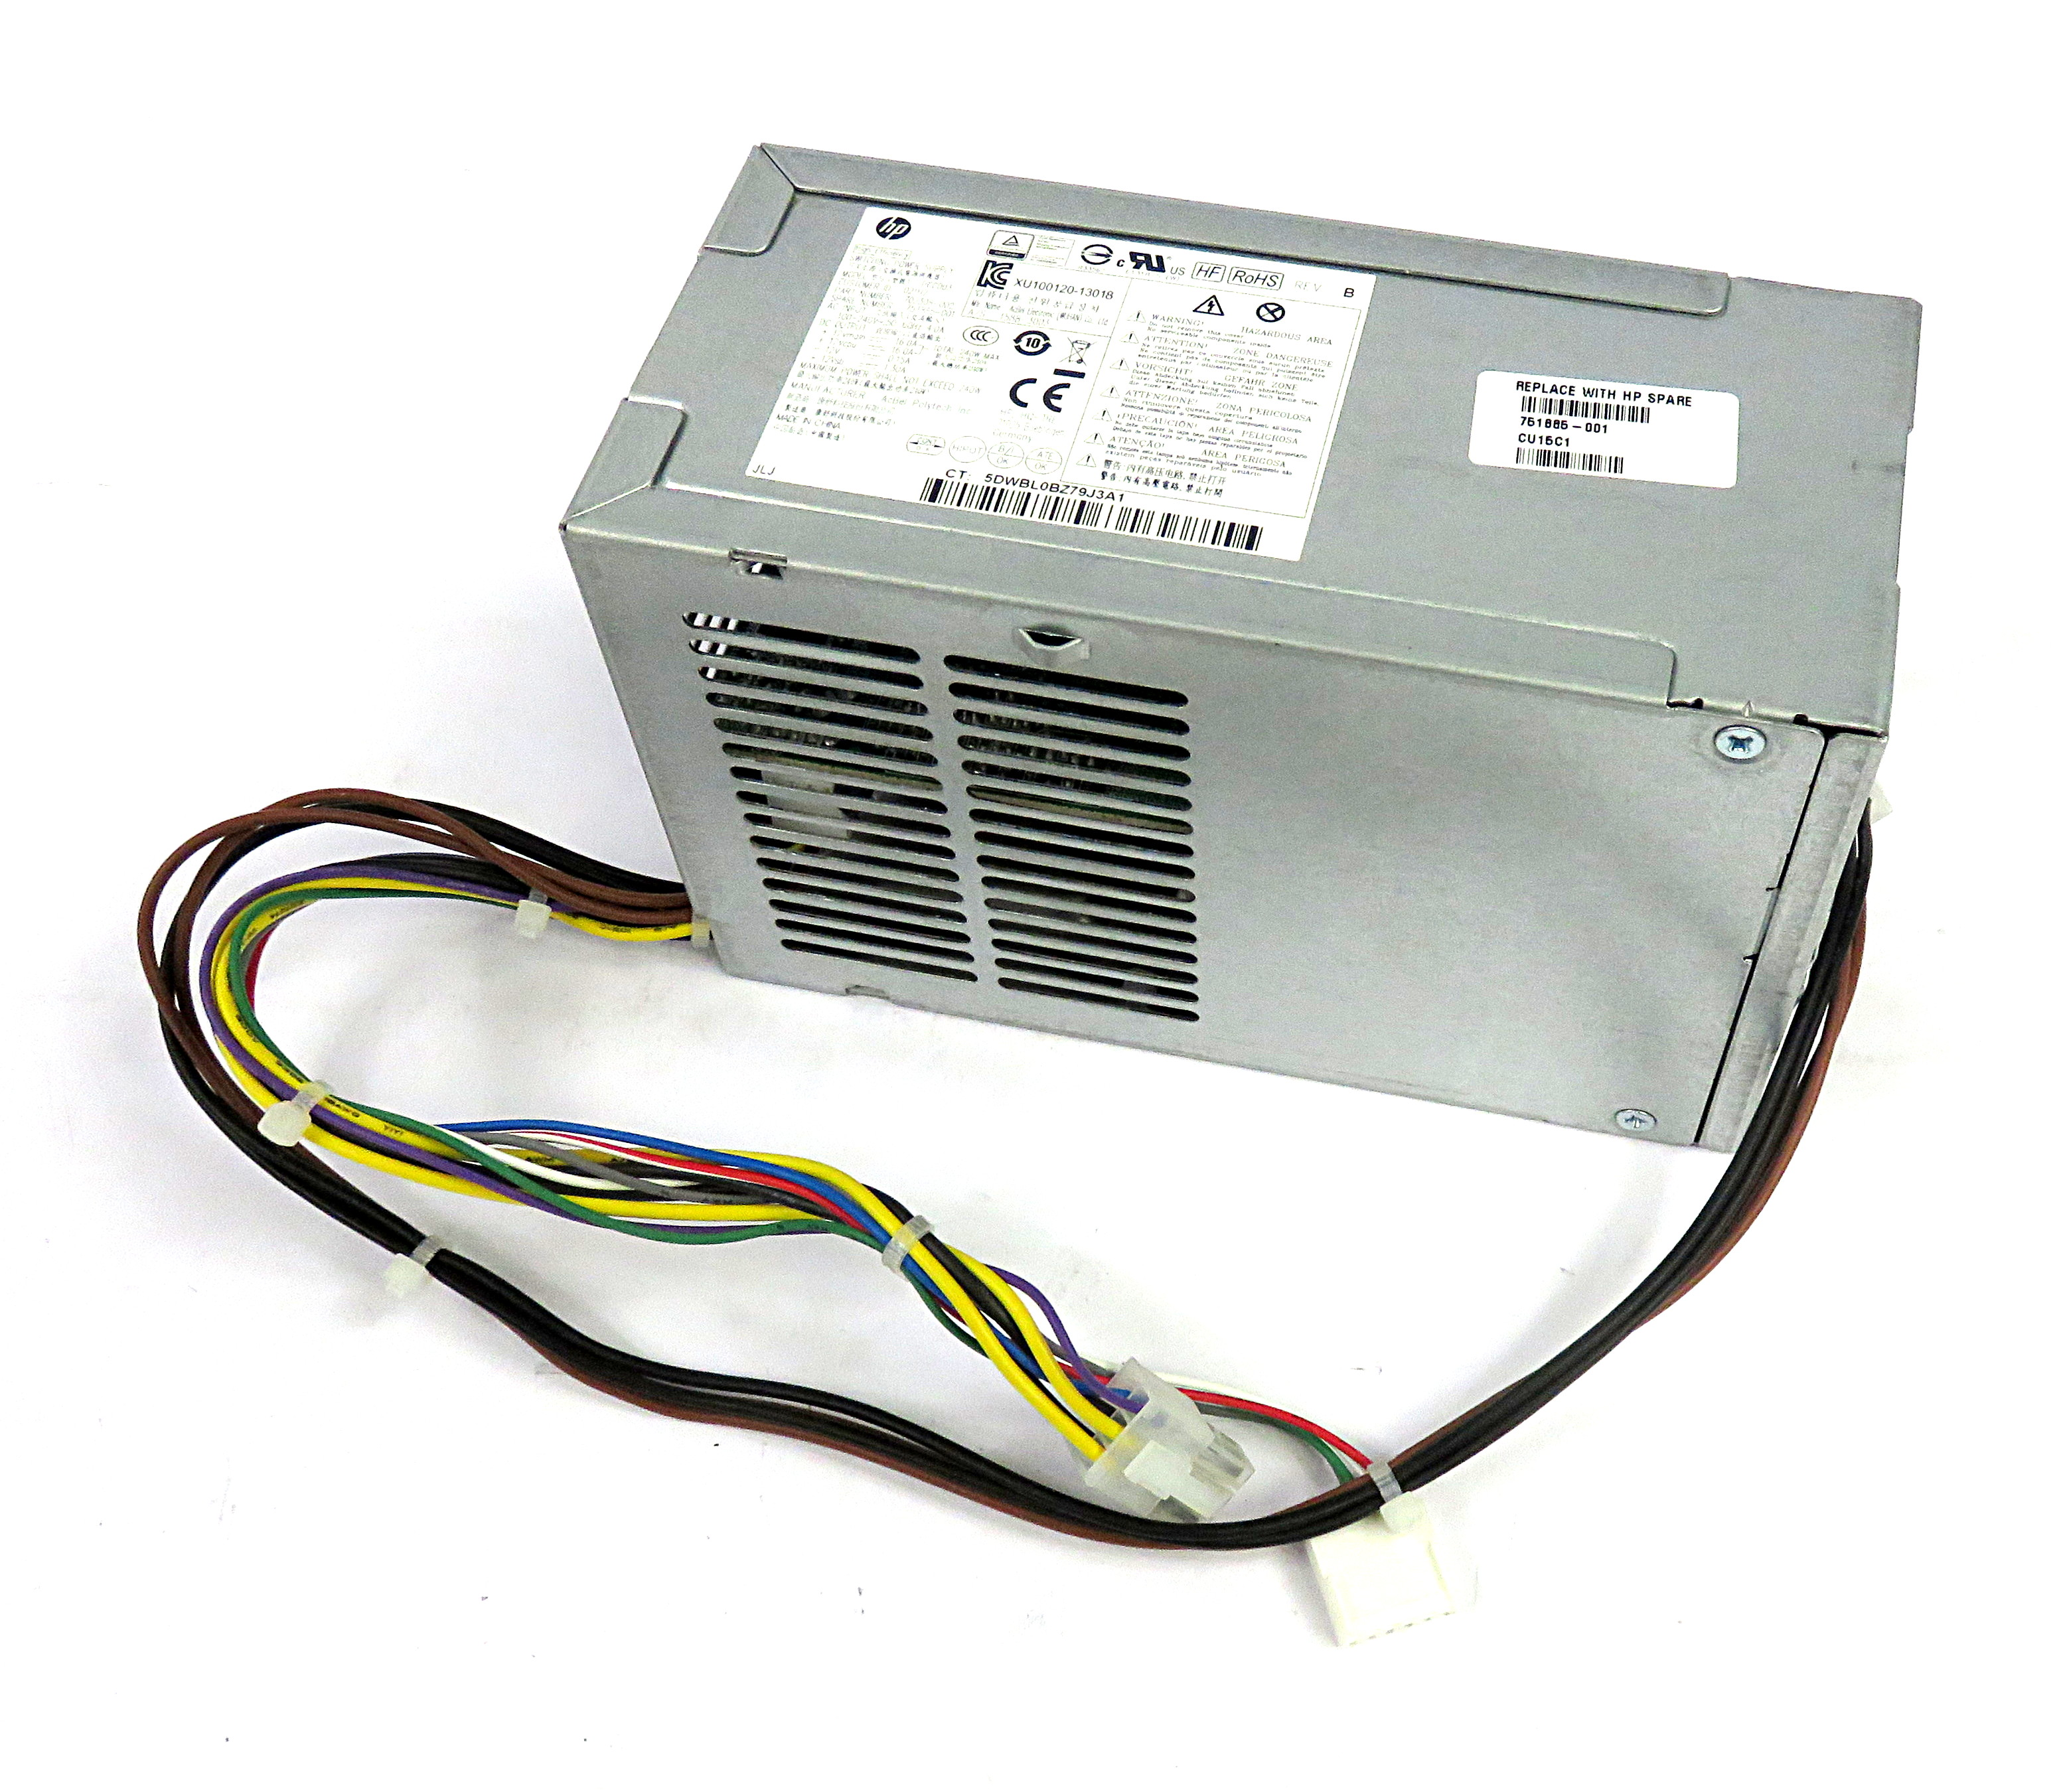 HP 755185-001 ProDesk 600 G1 SFF 240W 6 Pin Power Supply - AcBel PCC003